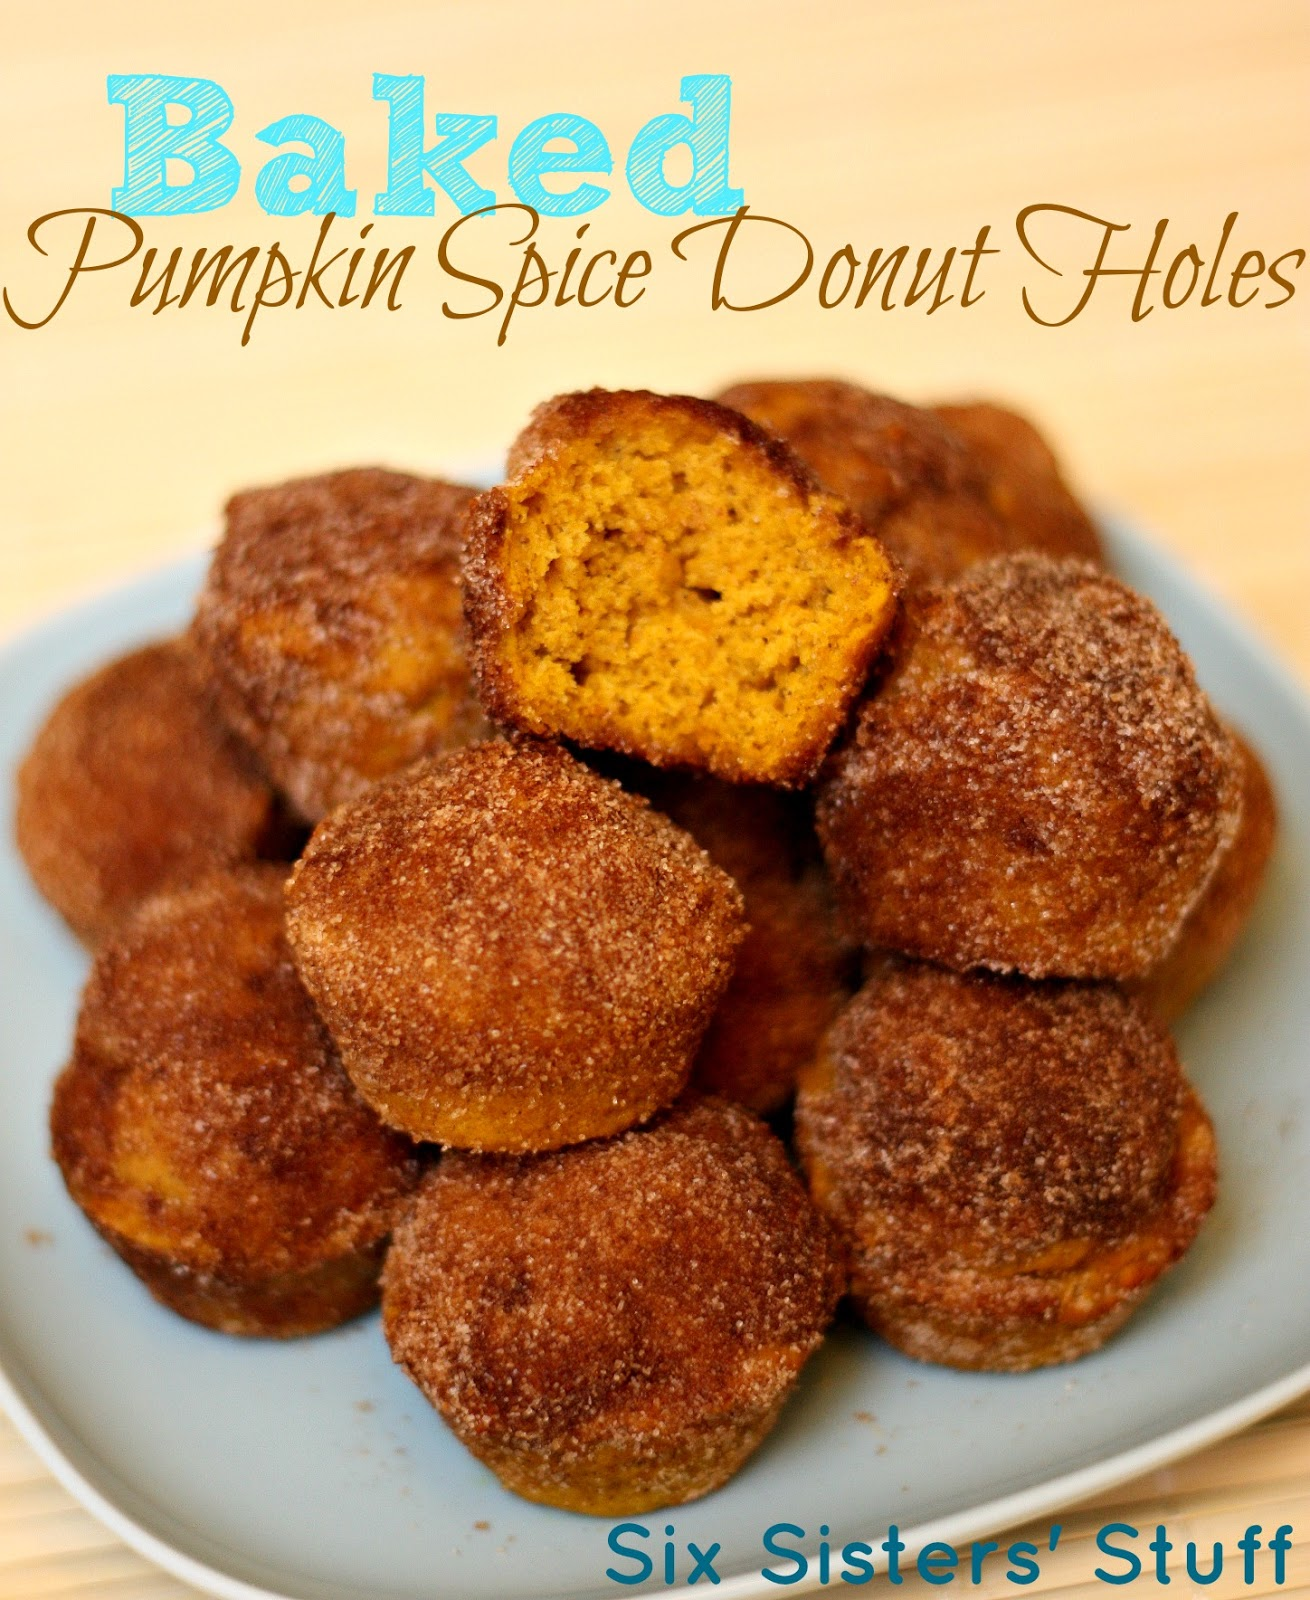 Baked Pumpkin Spice Donut Holes | Six Sisters' Stuff